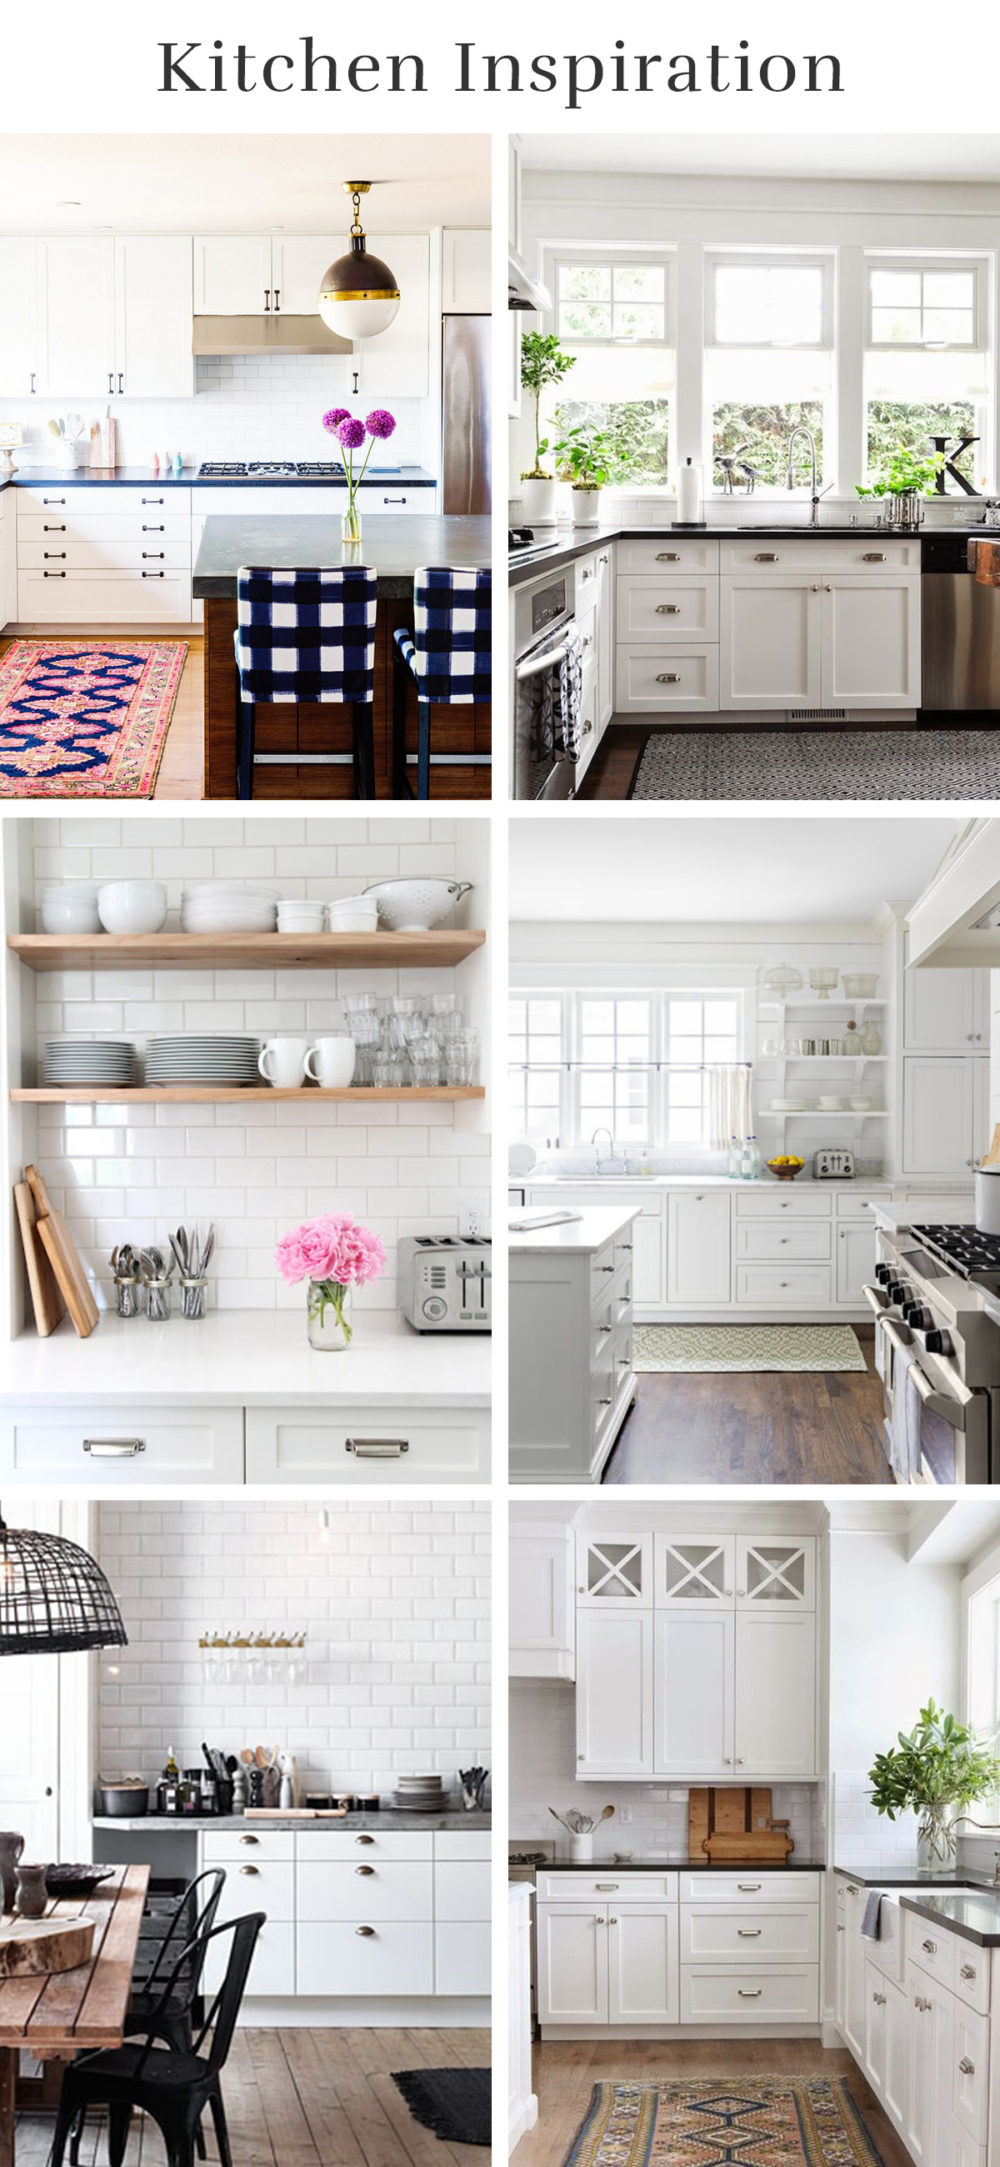 White Industrial Modern Kitchen Inspiration | lumberloveslace.com